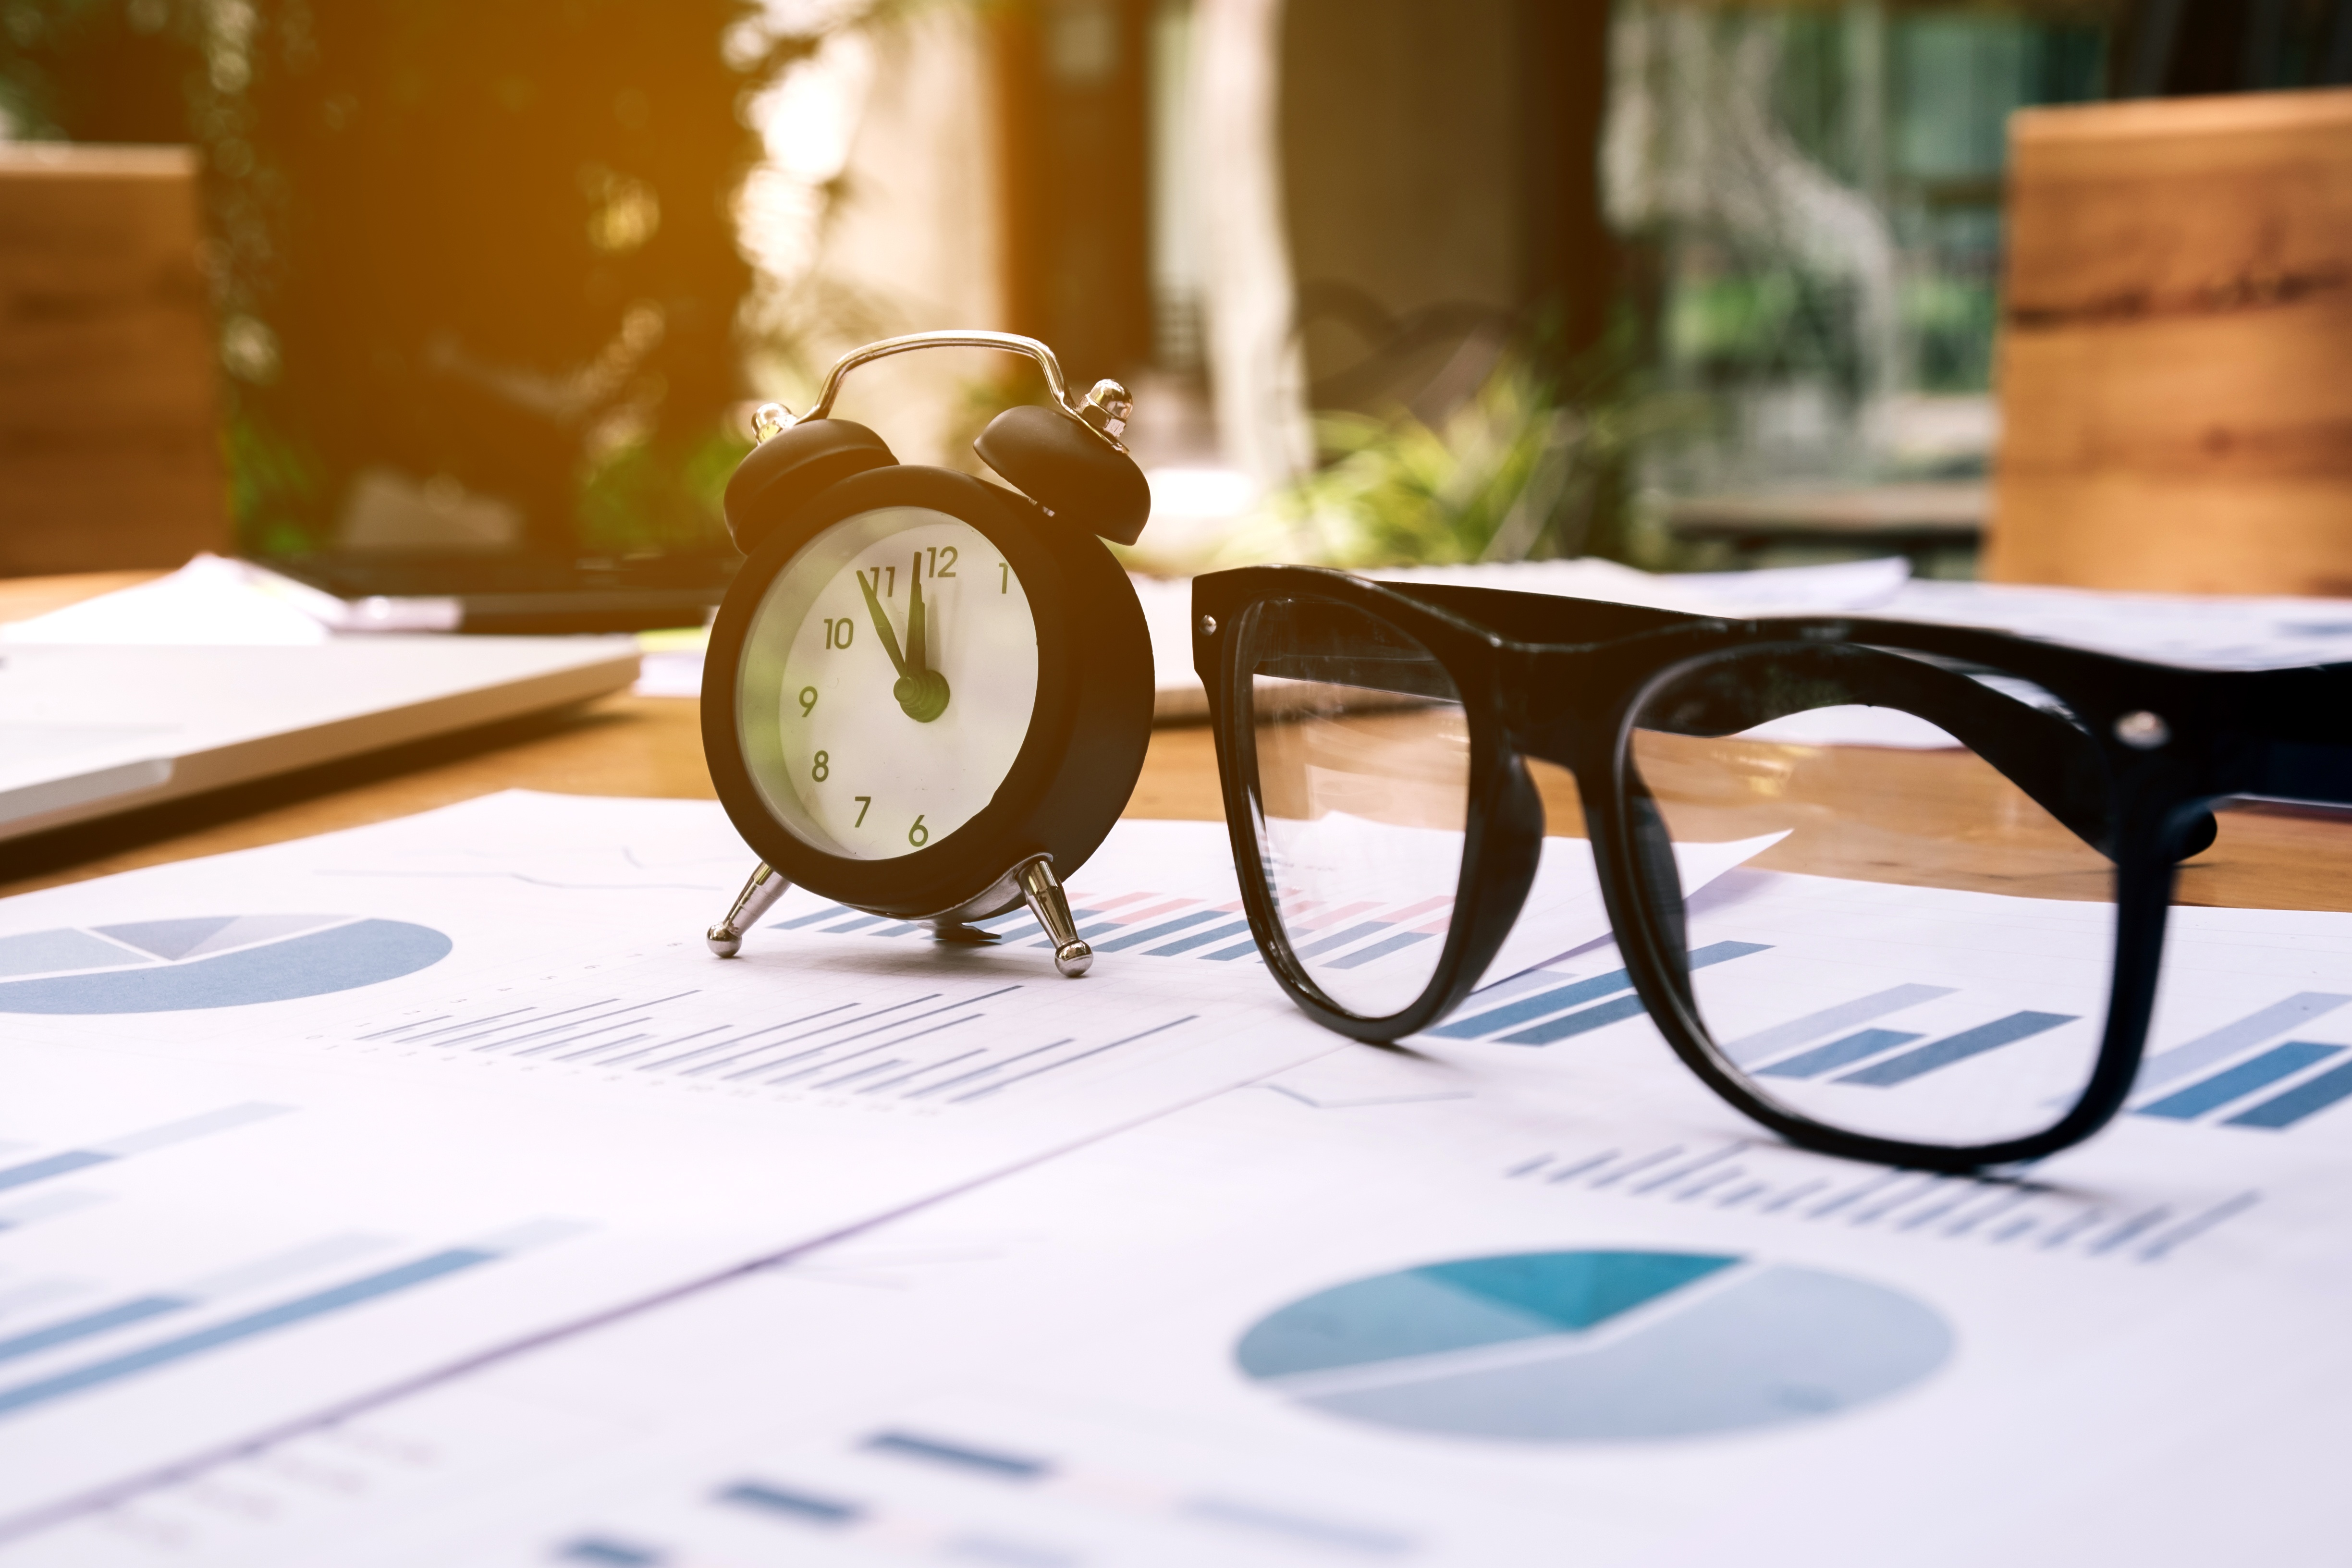 Glasses-and-clock-on-the-business-paper.-Report-chart-870388238_4896x3264